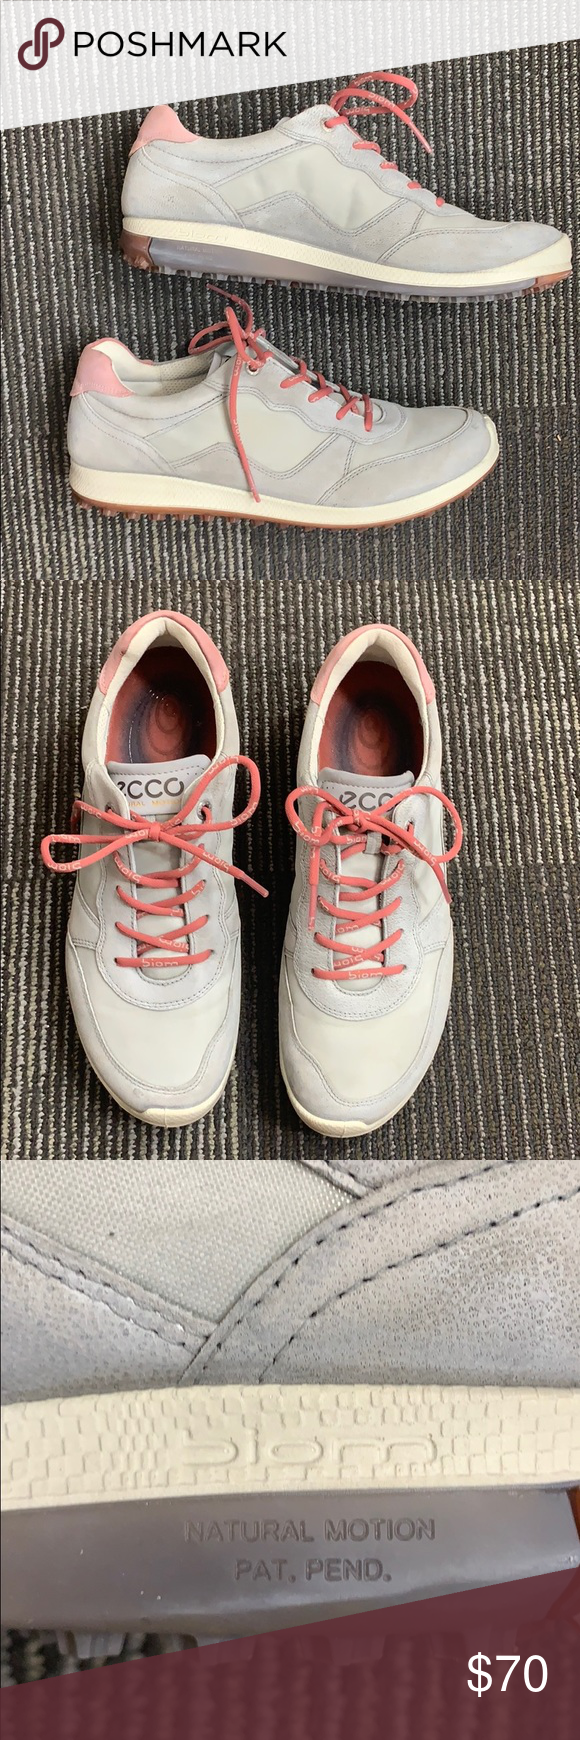 Gently used Ecco women's golf shoes